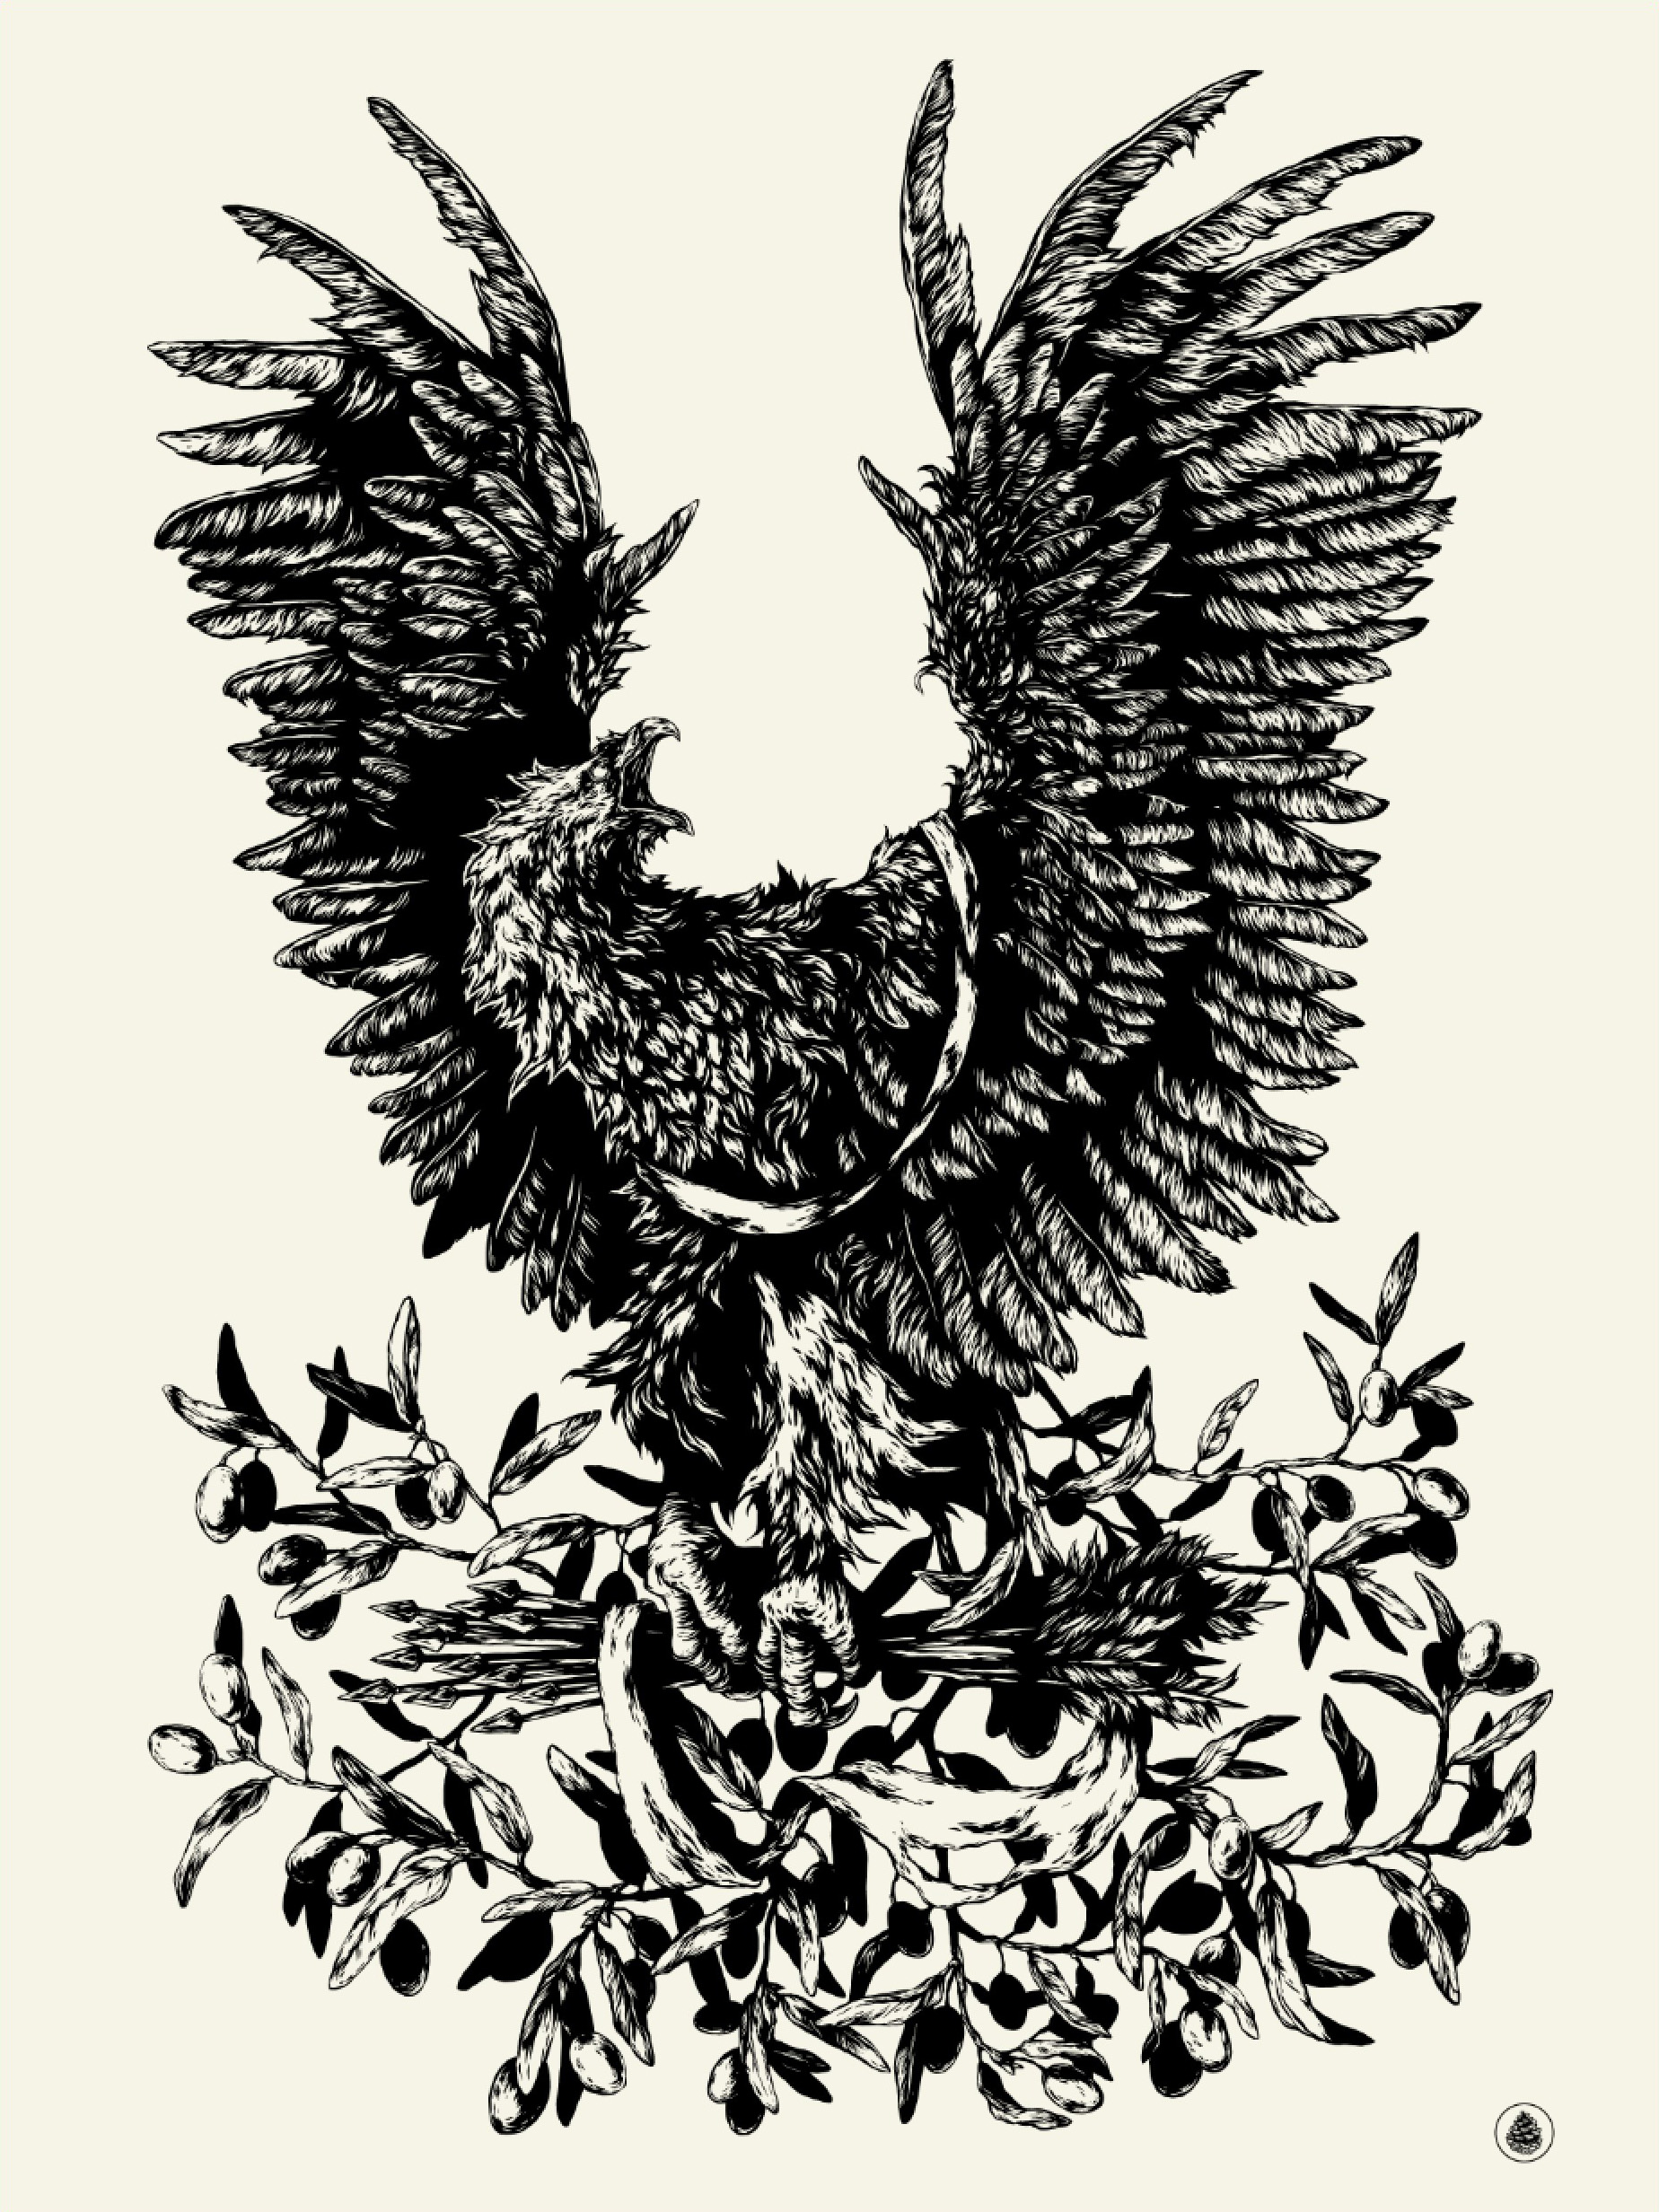 """Coats of Arms"" by Ivan Belikov.  18"" x 24"" Screenprint.  Ed of 44.  $25"